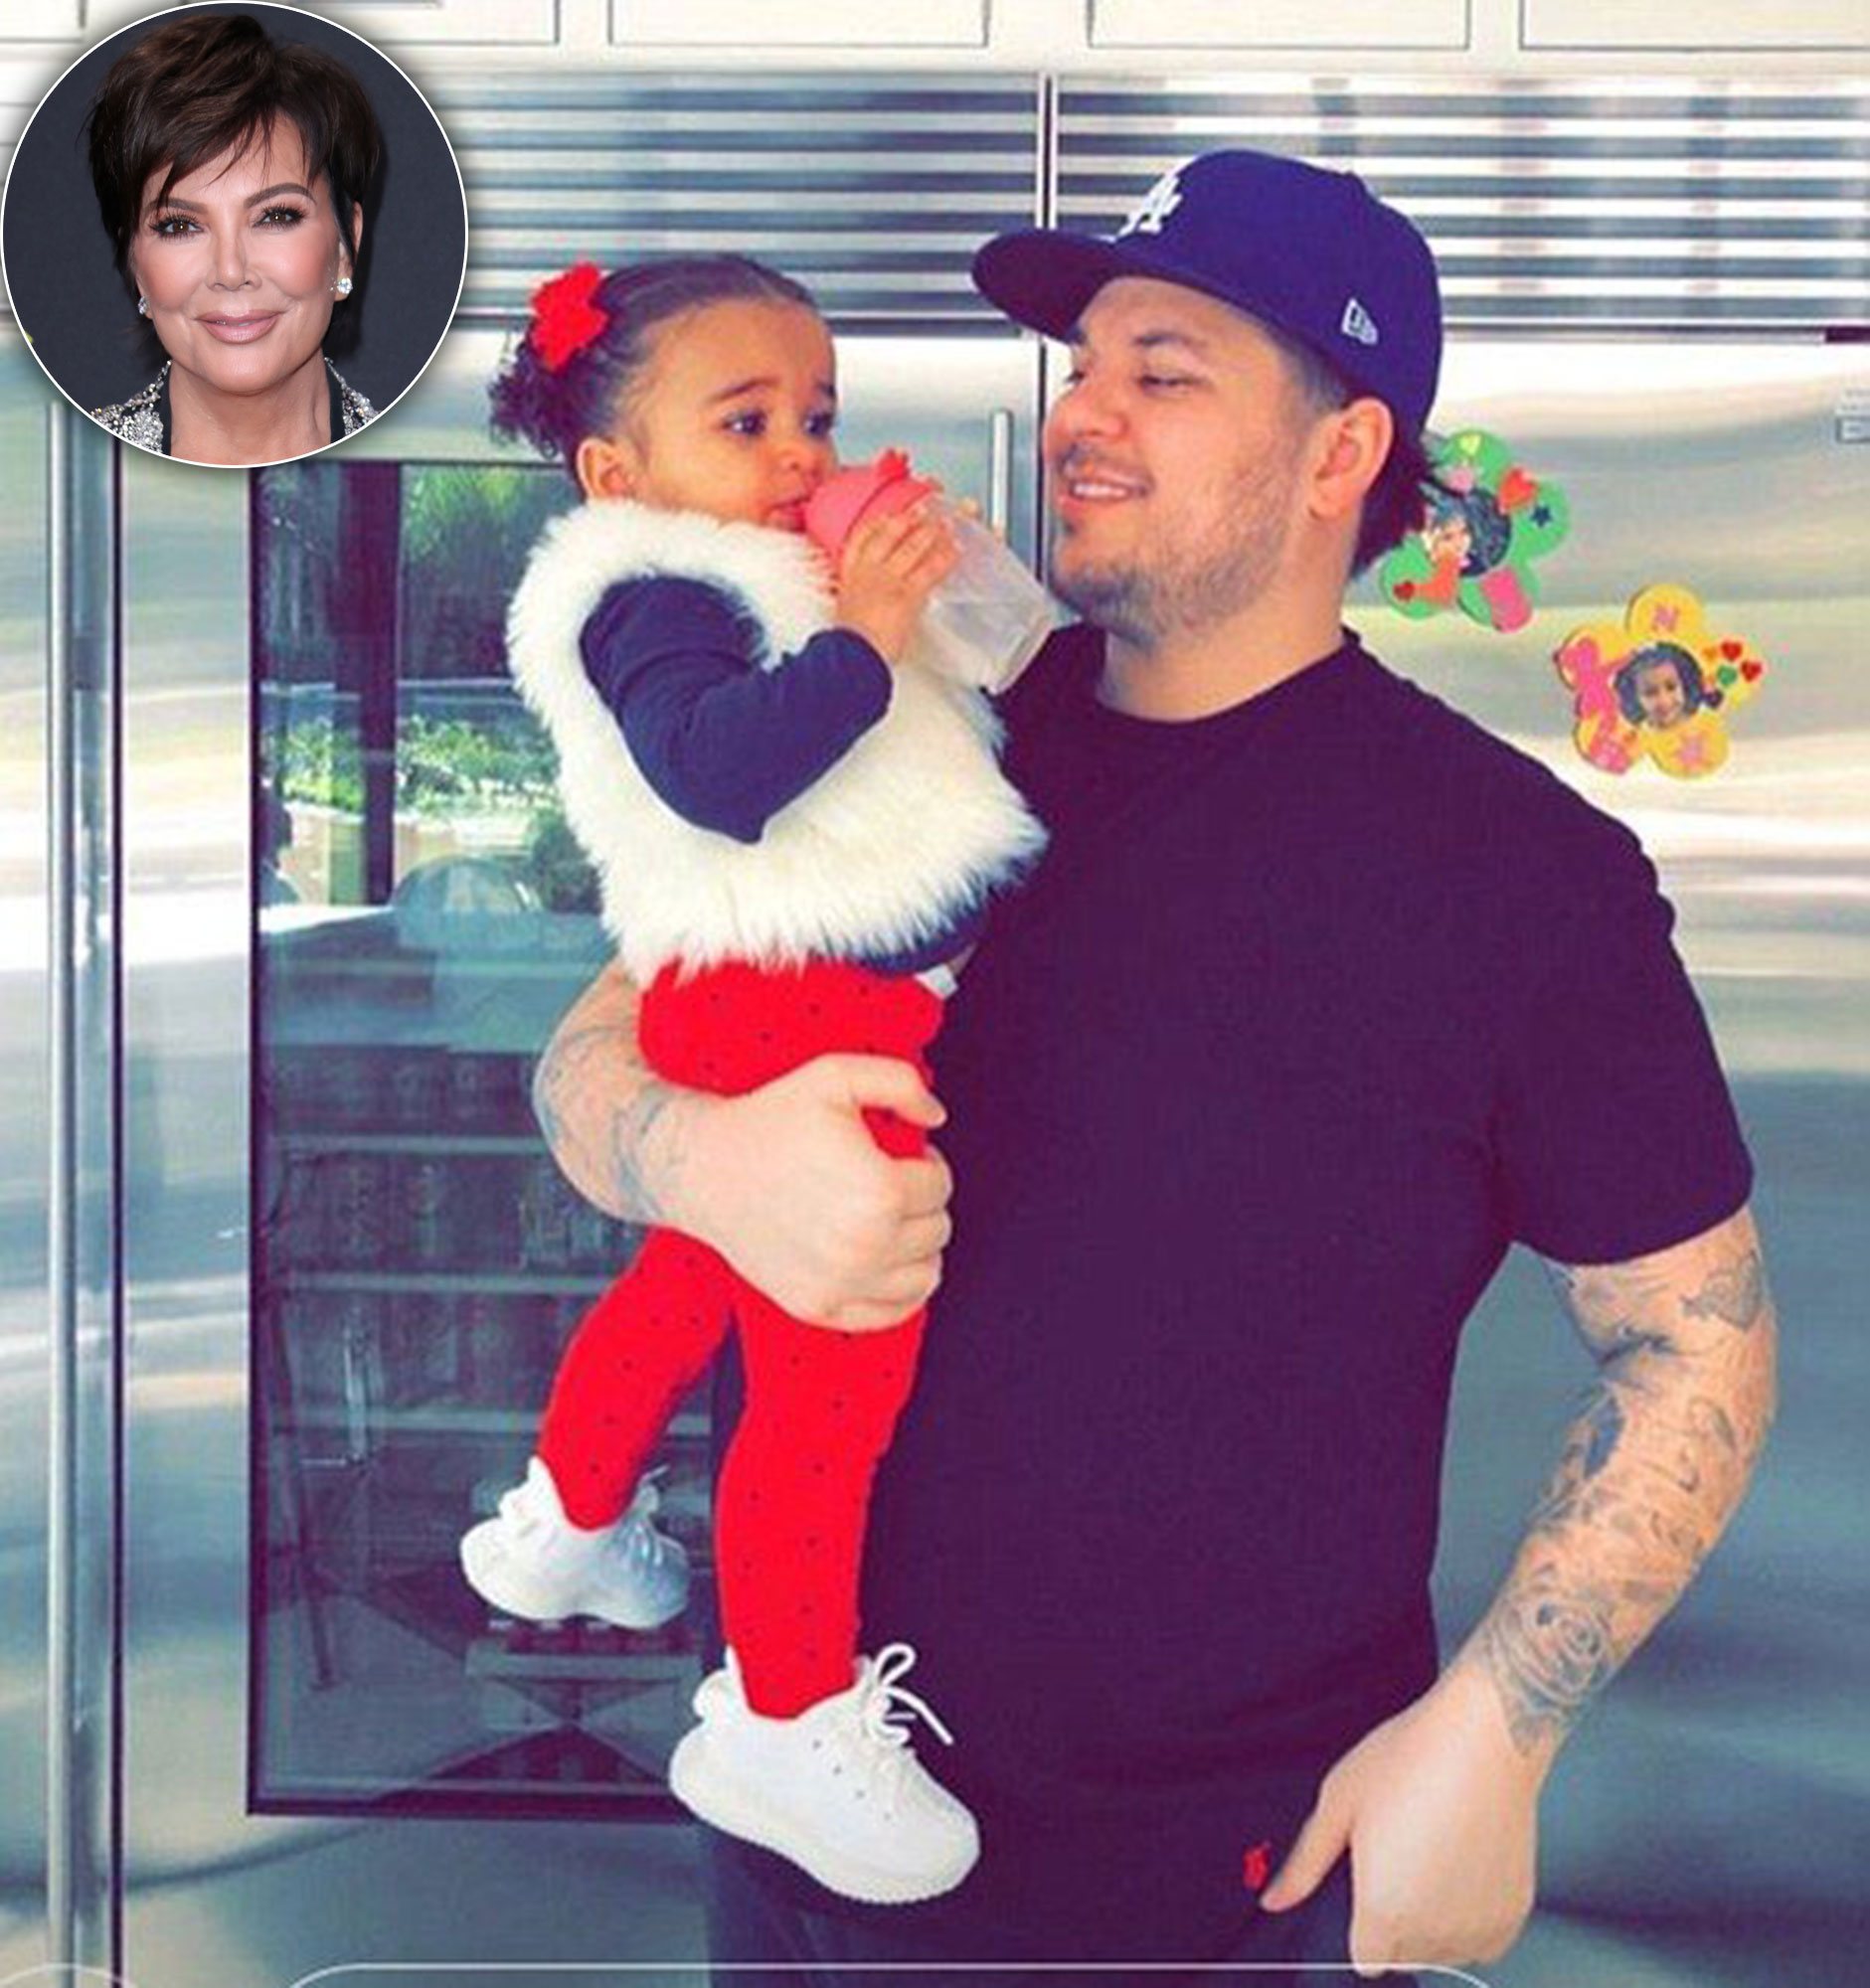 Rob Kardashian 'Takes Great Care' of Daughter Dream With Grandma Kris Jenner's Help: 'He Loves Her So Much'